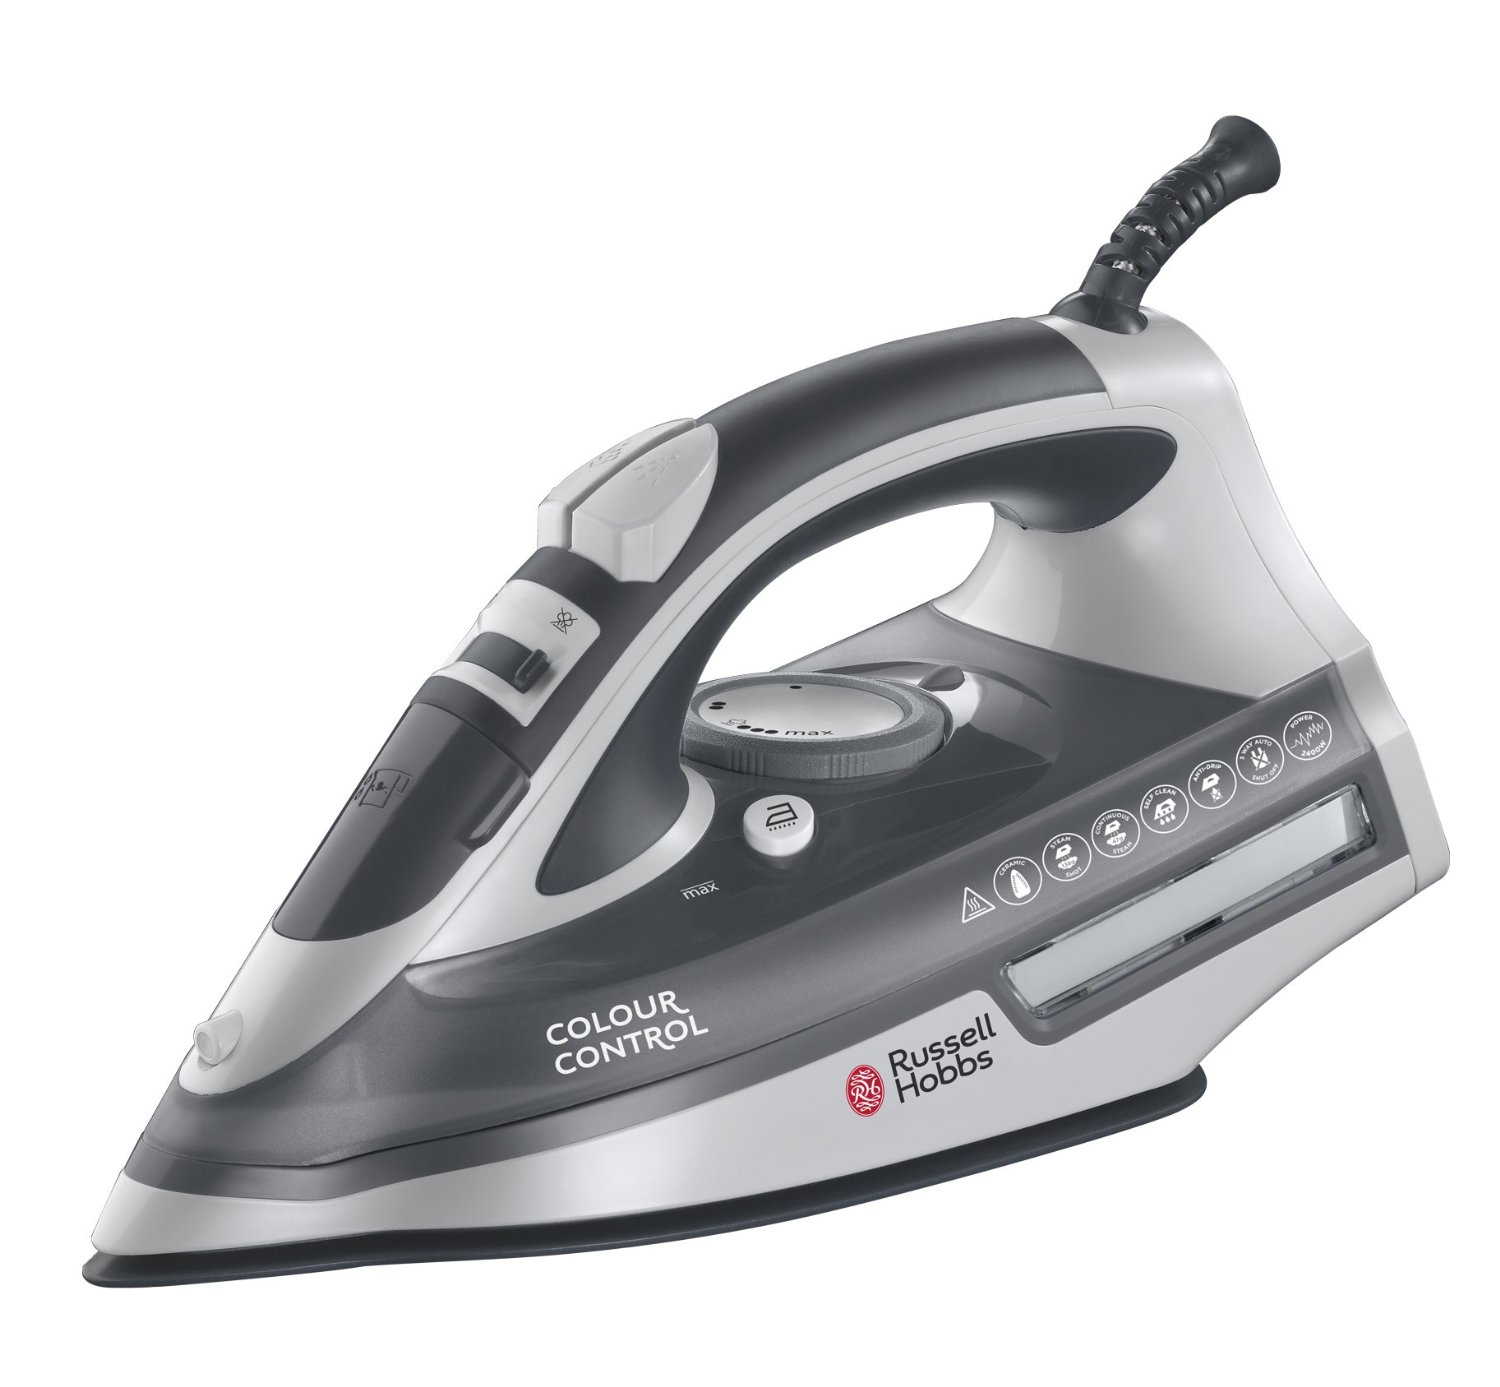 Russell Hobbs 20280 Colour Control 2400w Non Stick Self